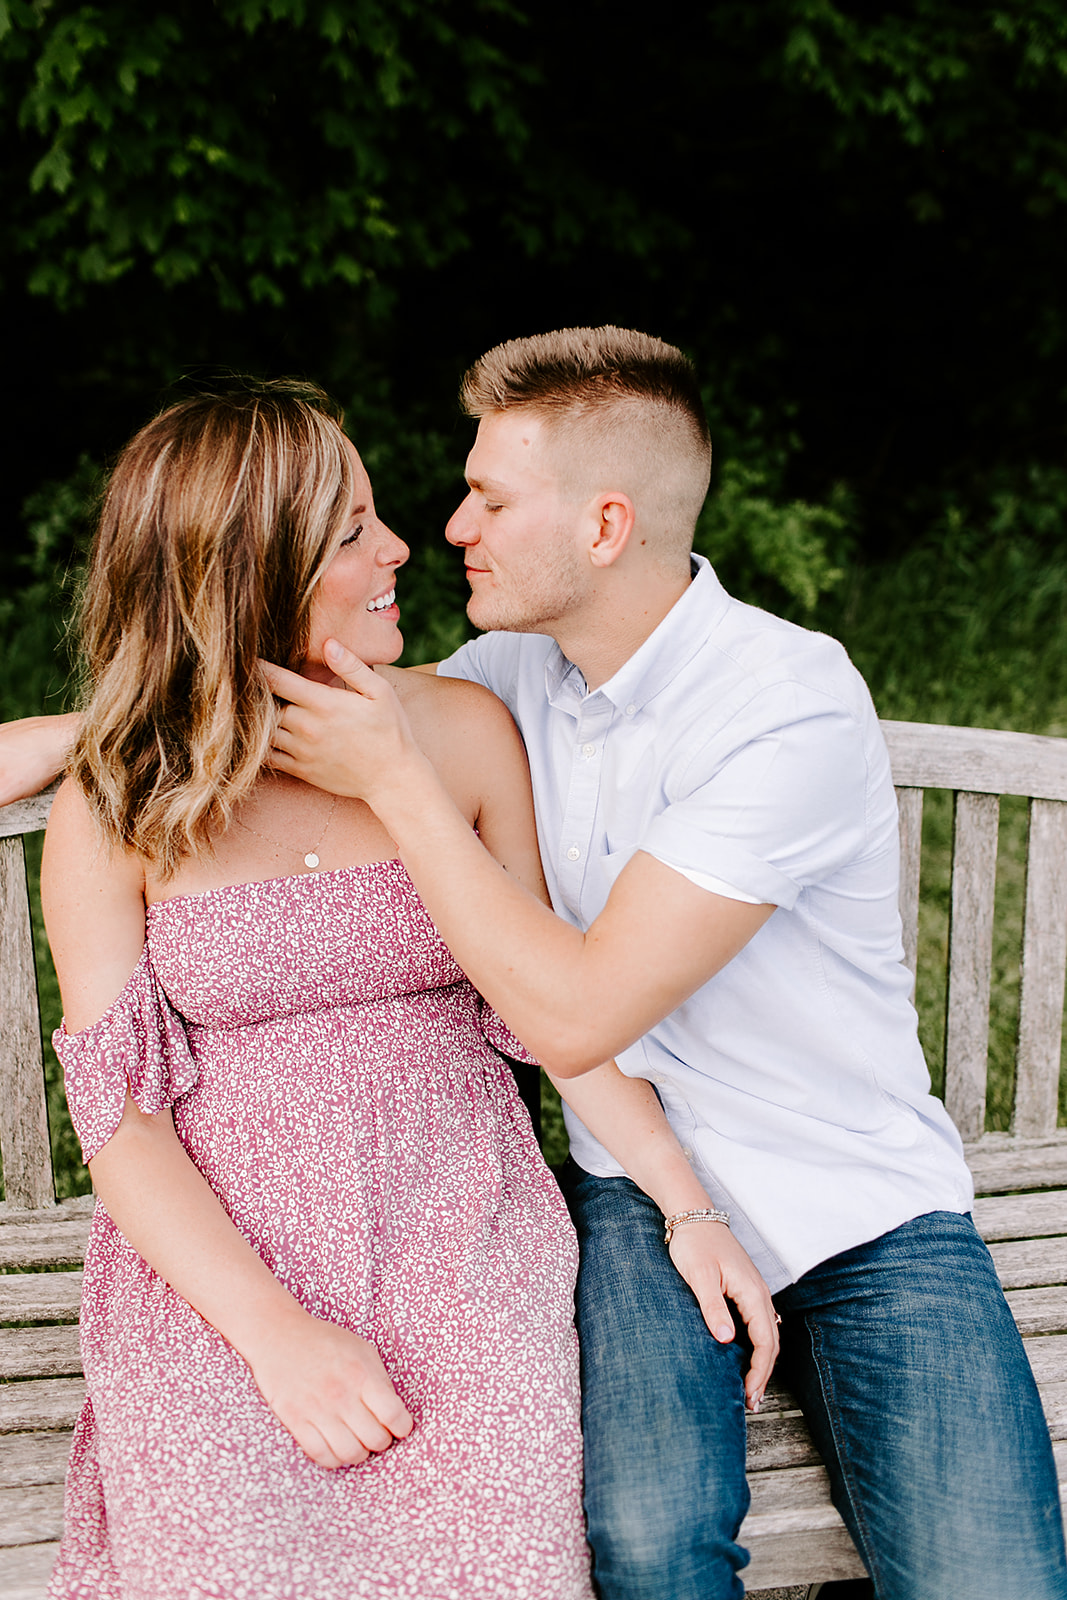 Casie_and_Sean_Maternity_session_at_cool_creek_park_in_Carmel_Indiana_by_Emily_Wehner-156.jpg